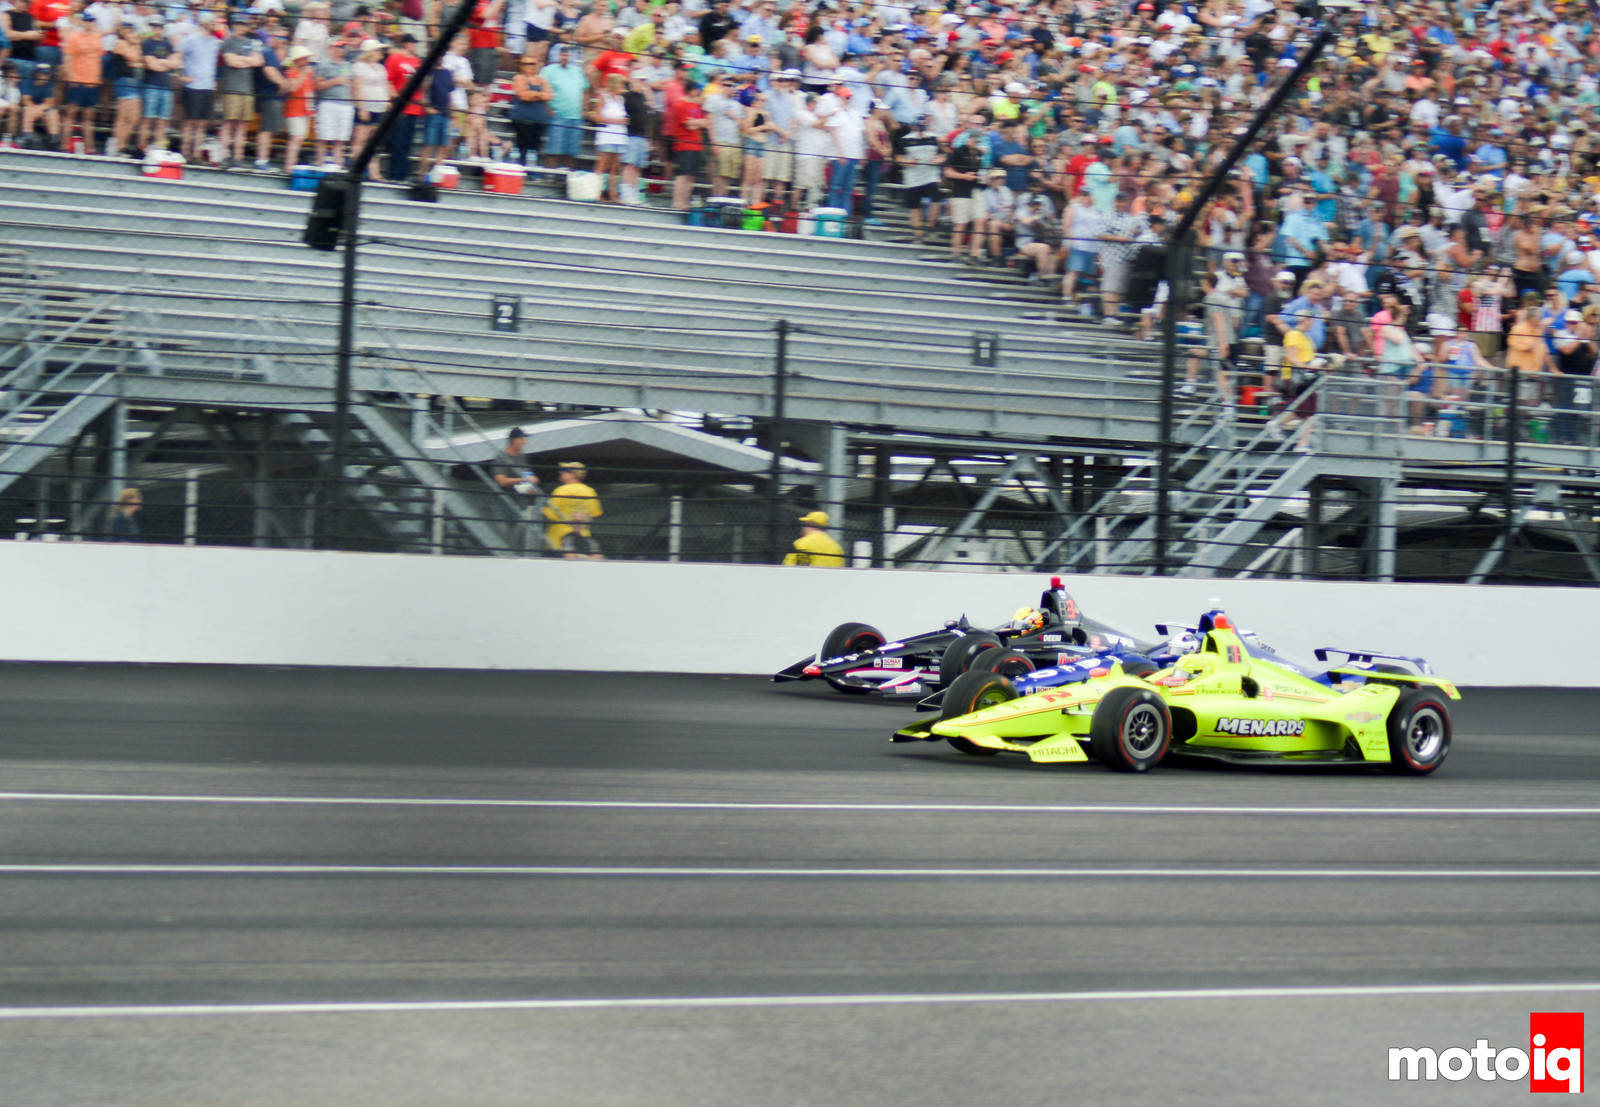 2019 Indy 500 Front Row